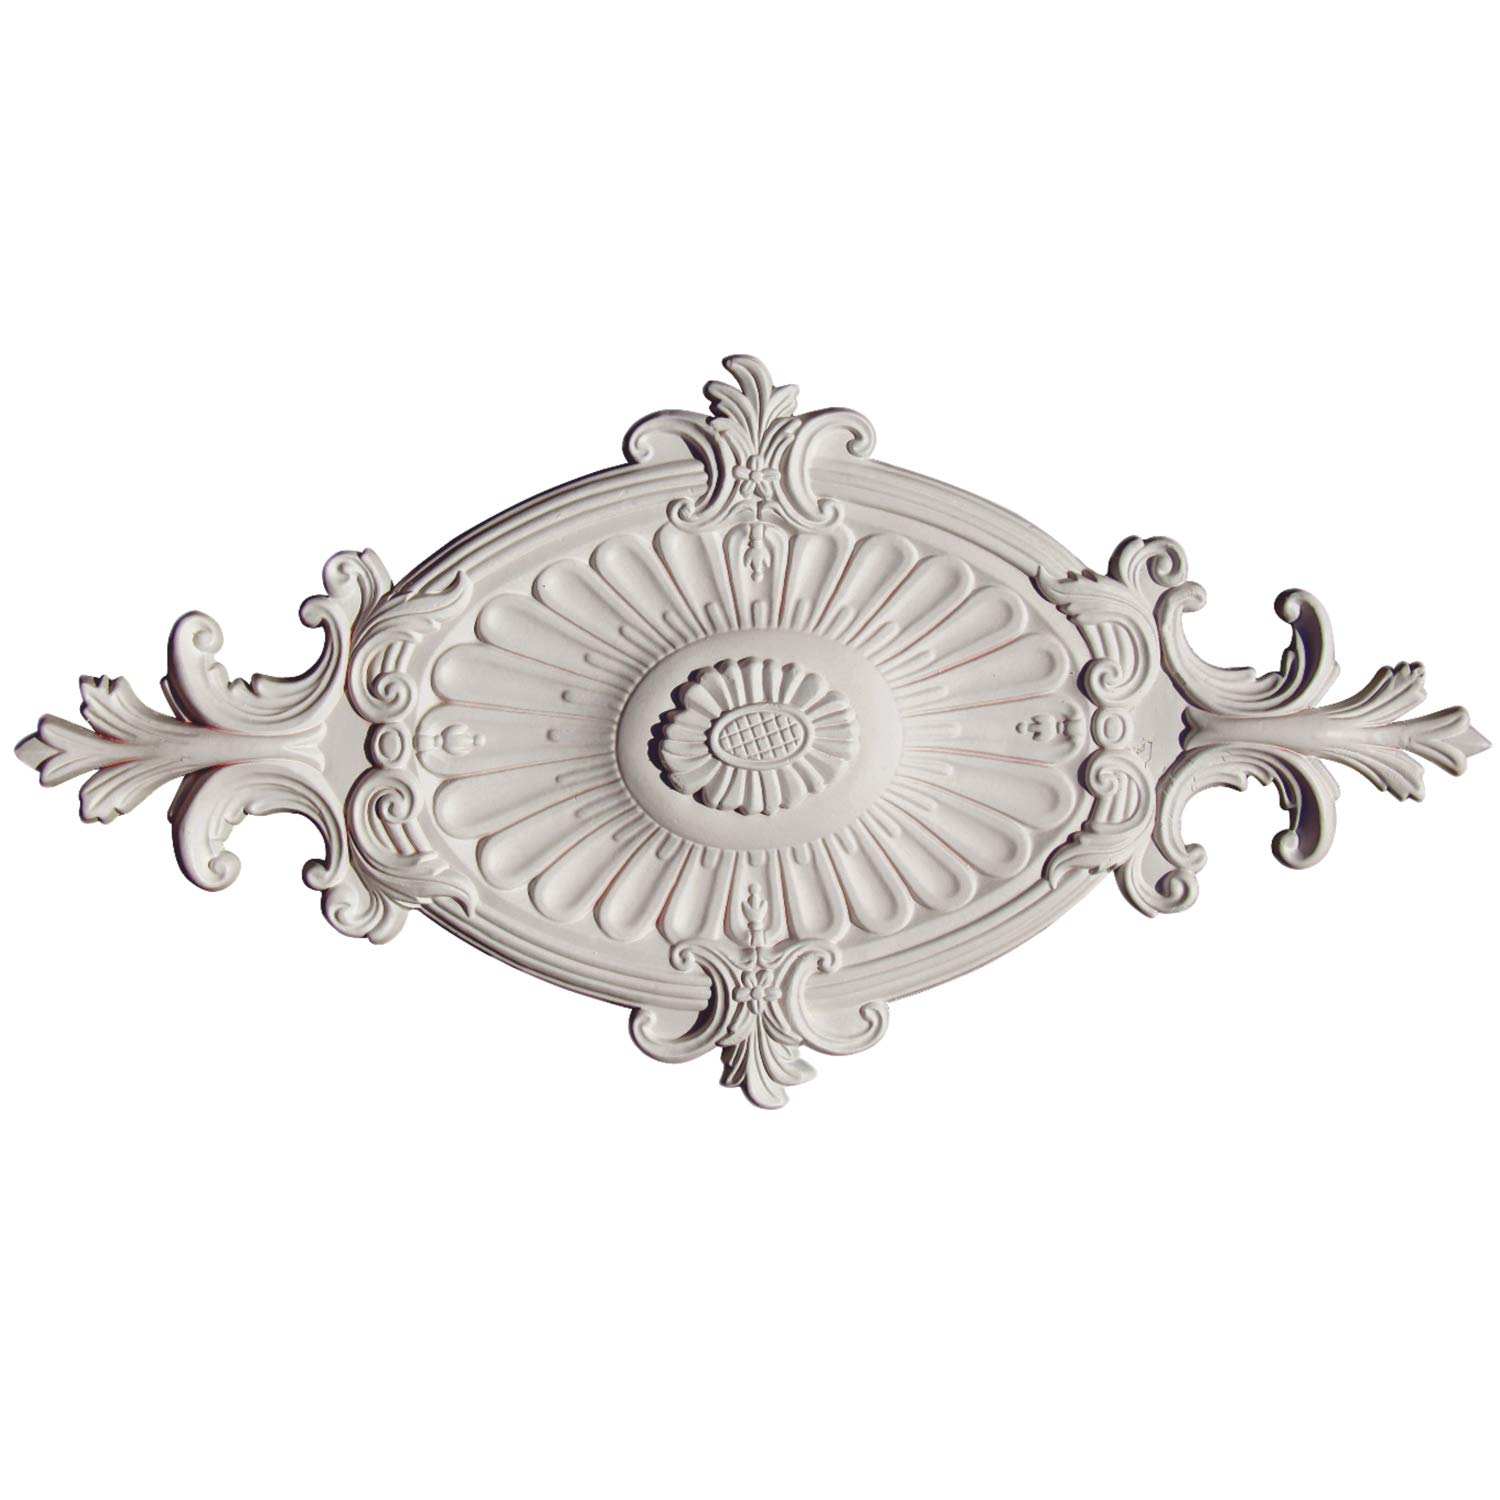 "PU Moulding24 Inch Victorian Polyurethane Ceiling Medallion for Wall Ceiling Decor 24""L x 12 2/5""W x 1 3/5"" P"